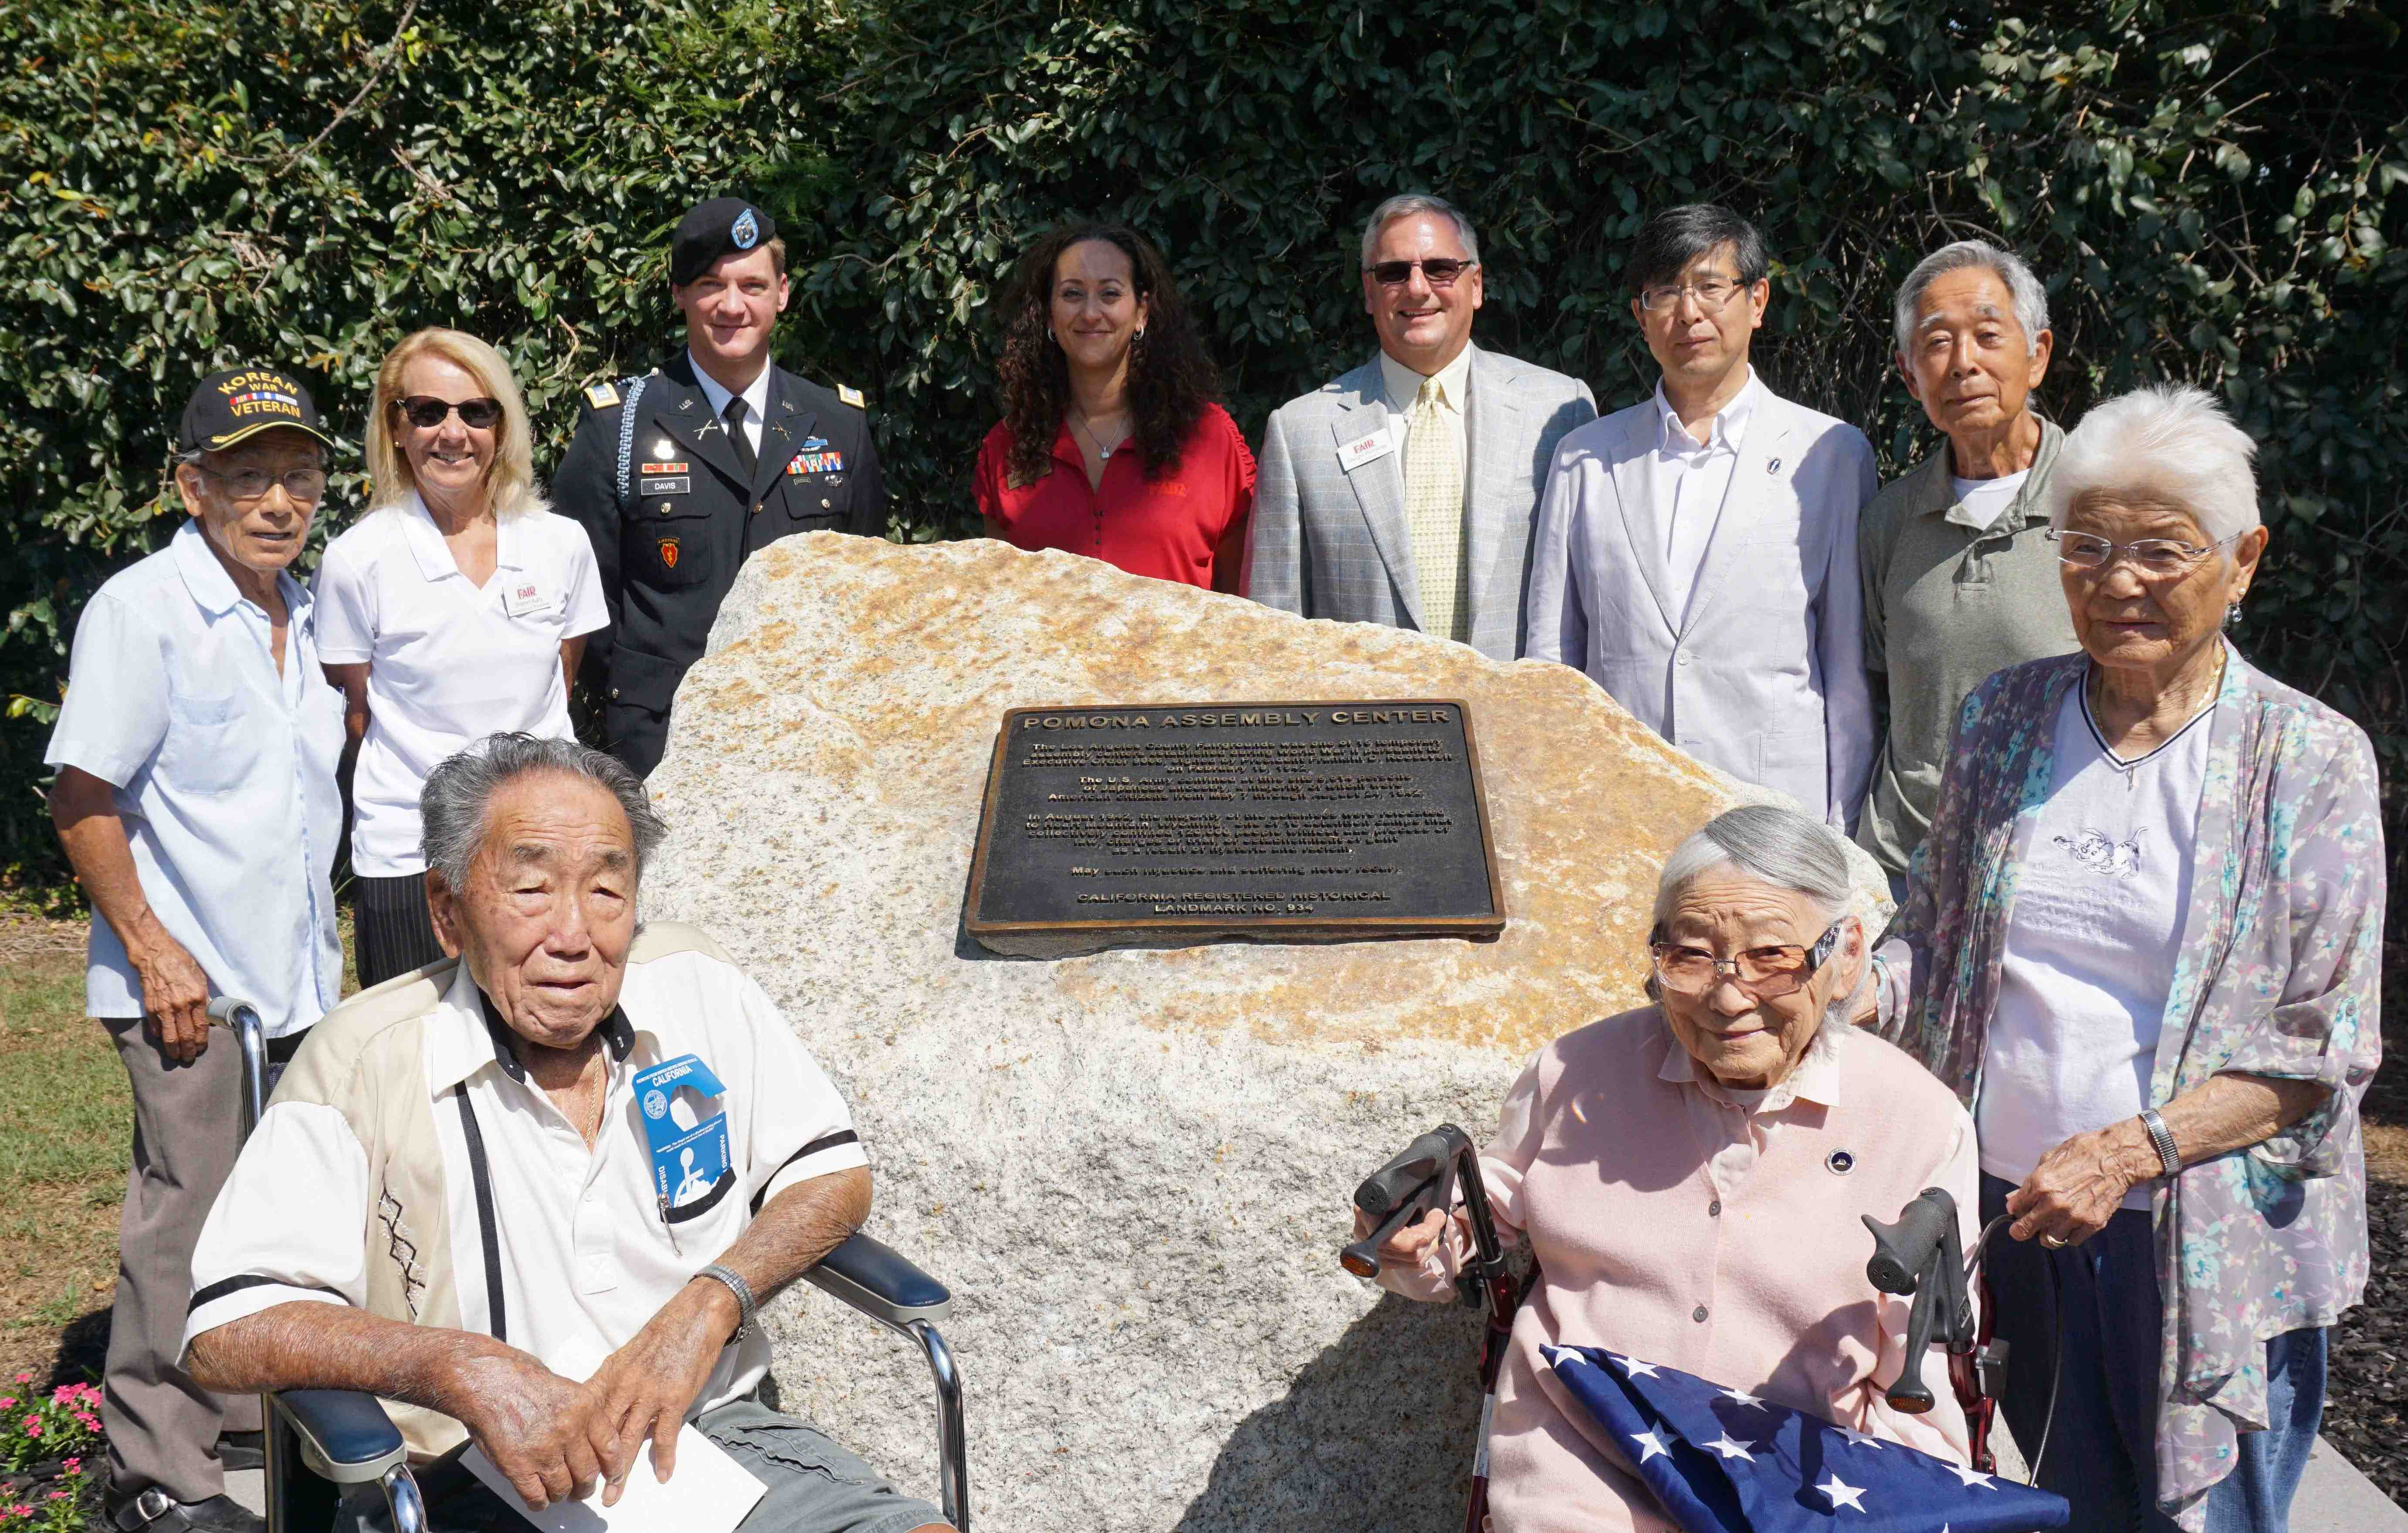 Dignitaries participating in the dedication were (from left) Bacon Sakatani, chair, Pomona Assembly Center Committee; Sharon Autry, communications/public relations, Fairplex; U.S. Army Capt. Joseph Davis, commander, SGV Recruiting Company; Tina Loza, director, Los Angeles County Fair Association; Dwight Richards, vice president of operations, Fairplex; and Consul General Akira Chiba, Consulate General of Japan in Los Angeles. Representing the older seniors in attendance were Ted Hashimoto, 94, and Yoshi Komaki, 95, in the back; Toshi Asano, 93, and Helen Munekiyo, 96, seated. (Photo by Patti Hirahara)